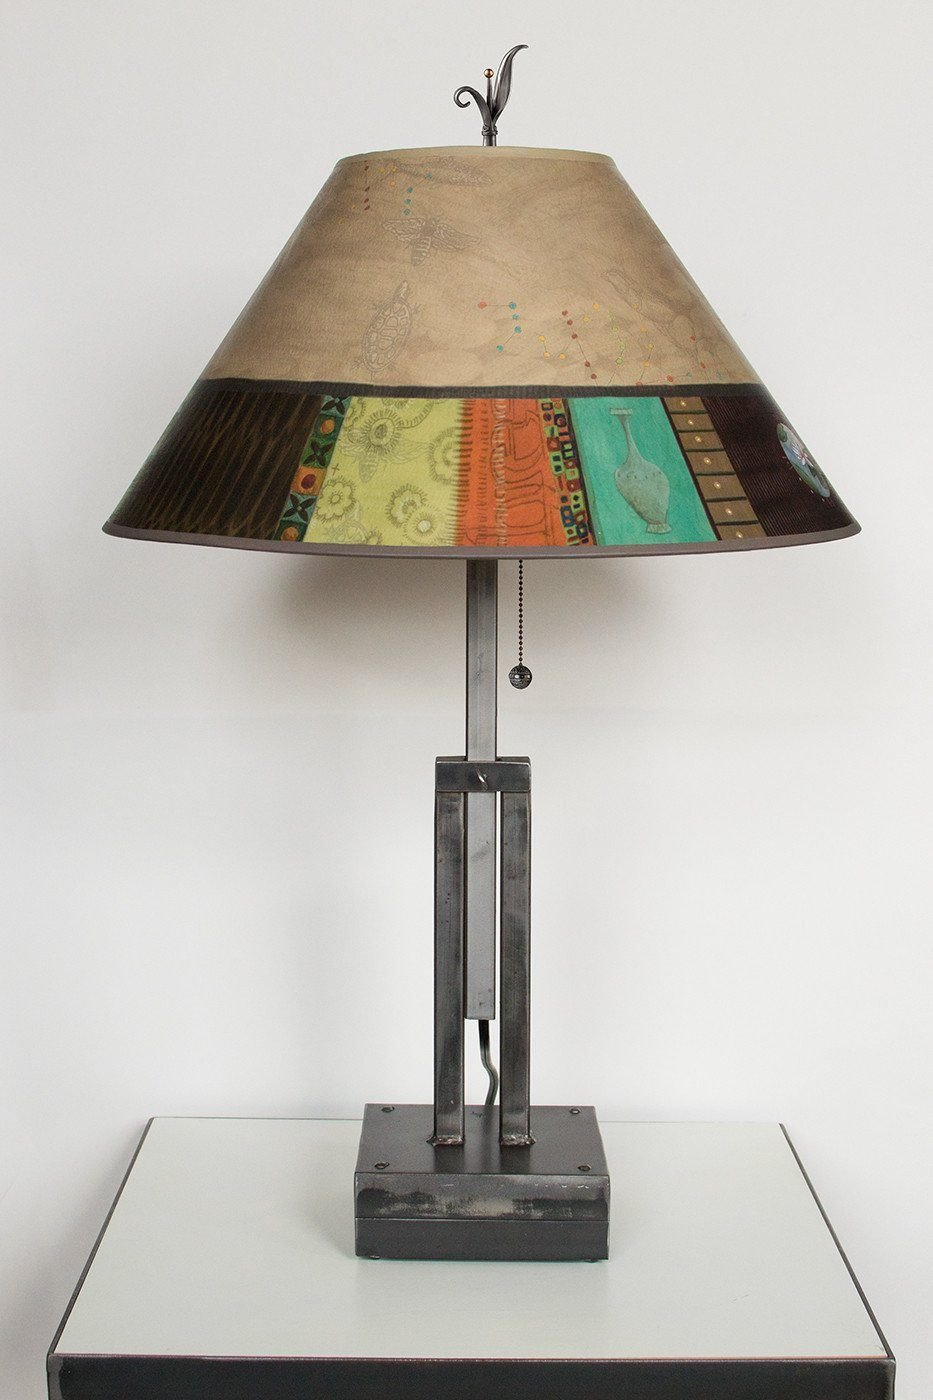 Adjustable-Height Steel Table Lamp with Large Conical Shade in Linen Match